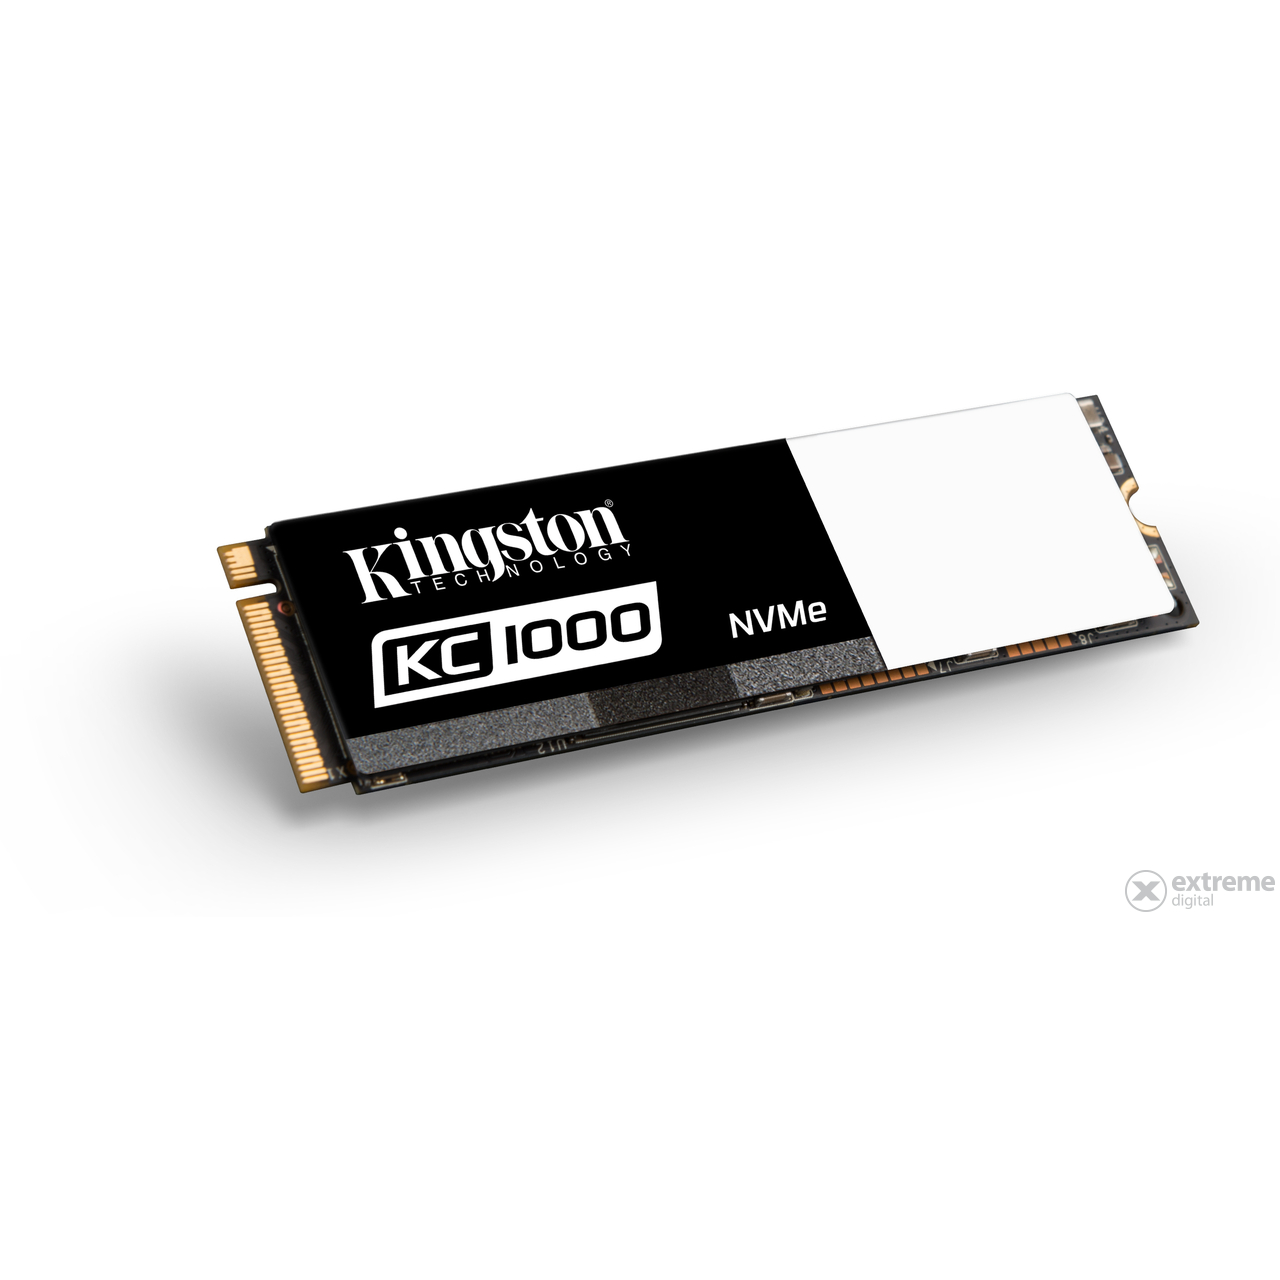 Kingston KC1000 NVMe PCIe M.2 SSD 240 GB SSD (SKC1000/240G)